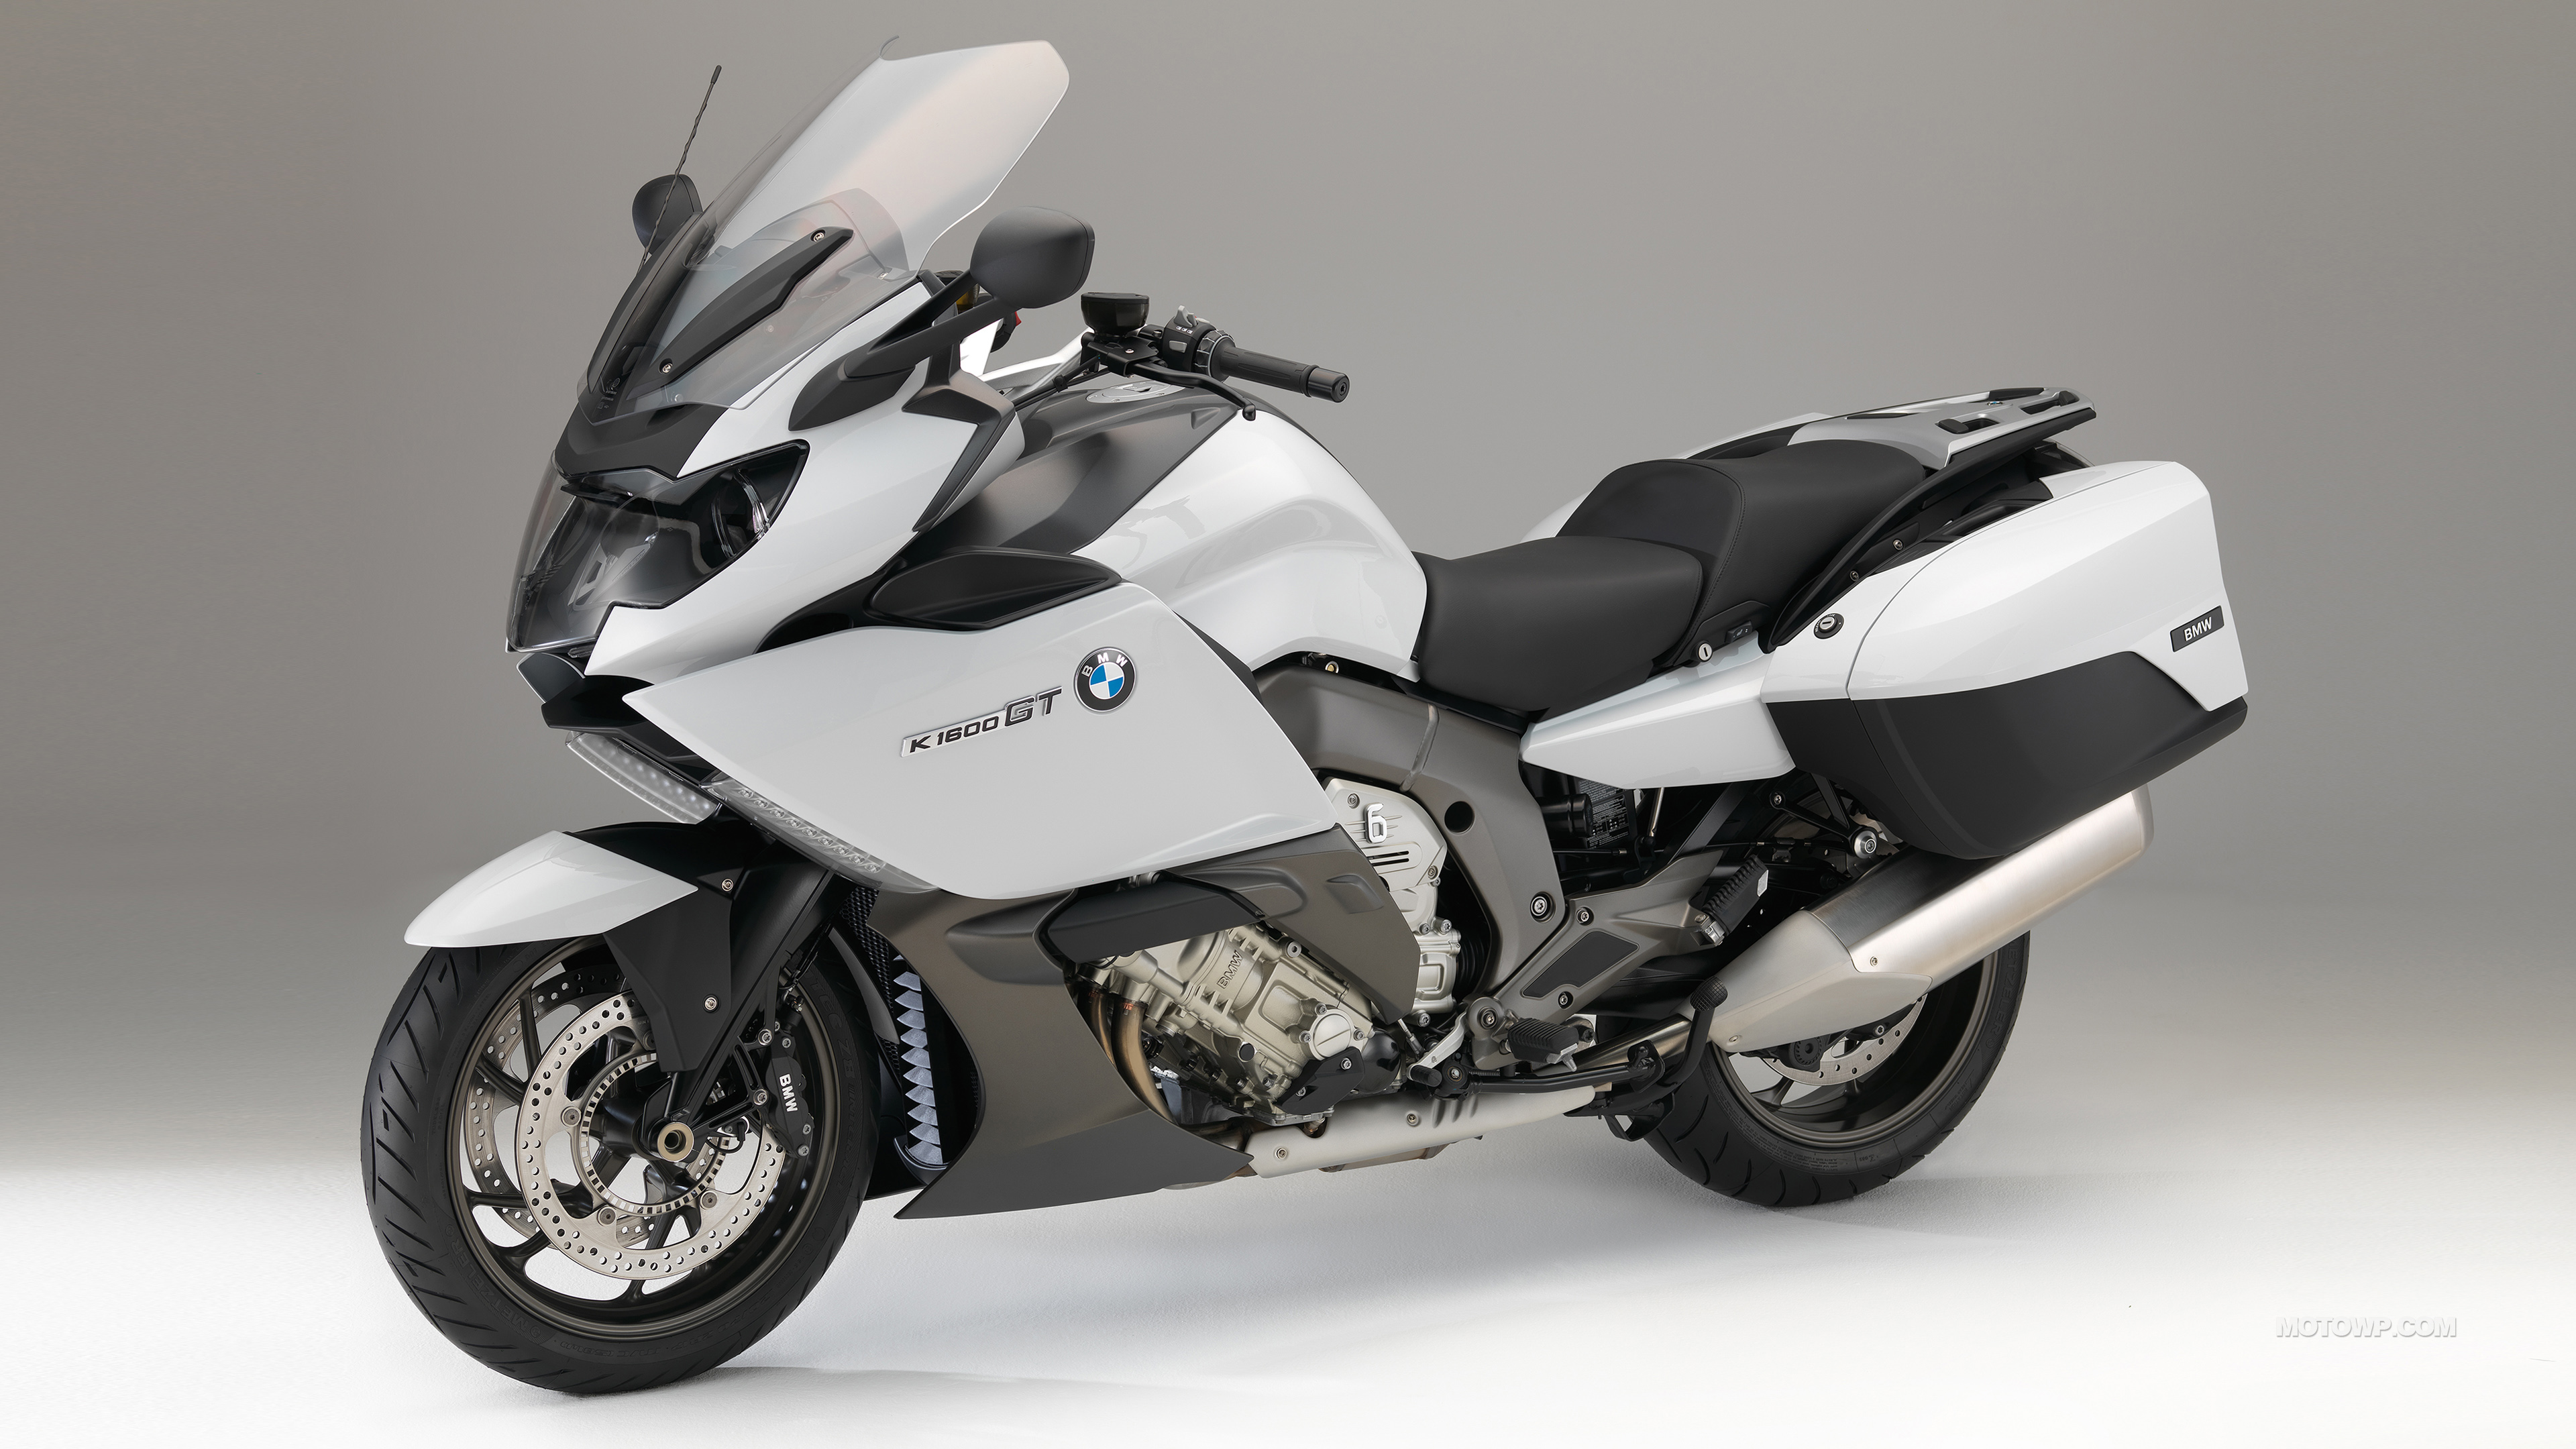 motorcycles desktop wallpapers bmw k 1600 gt 2014. Black Bedroom Furniture Sets. Home Design Ideas